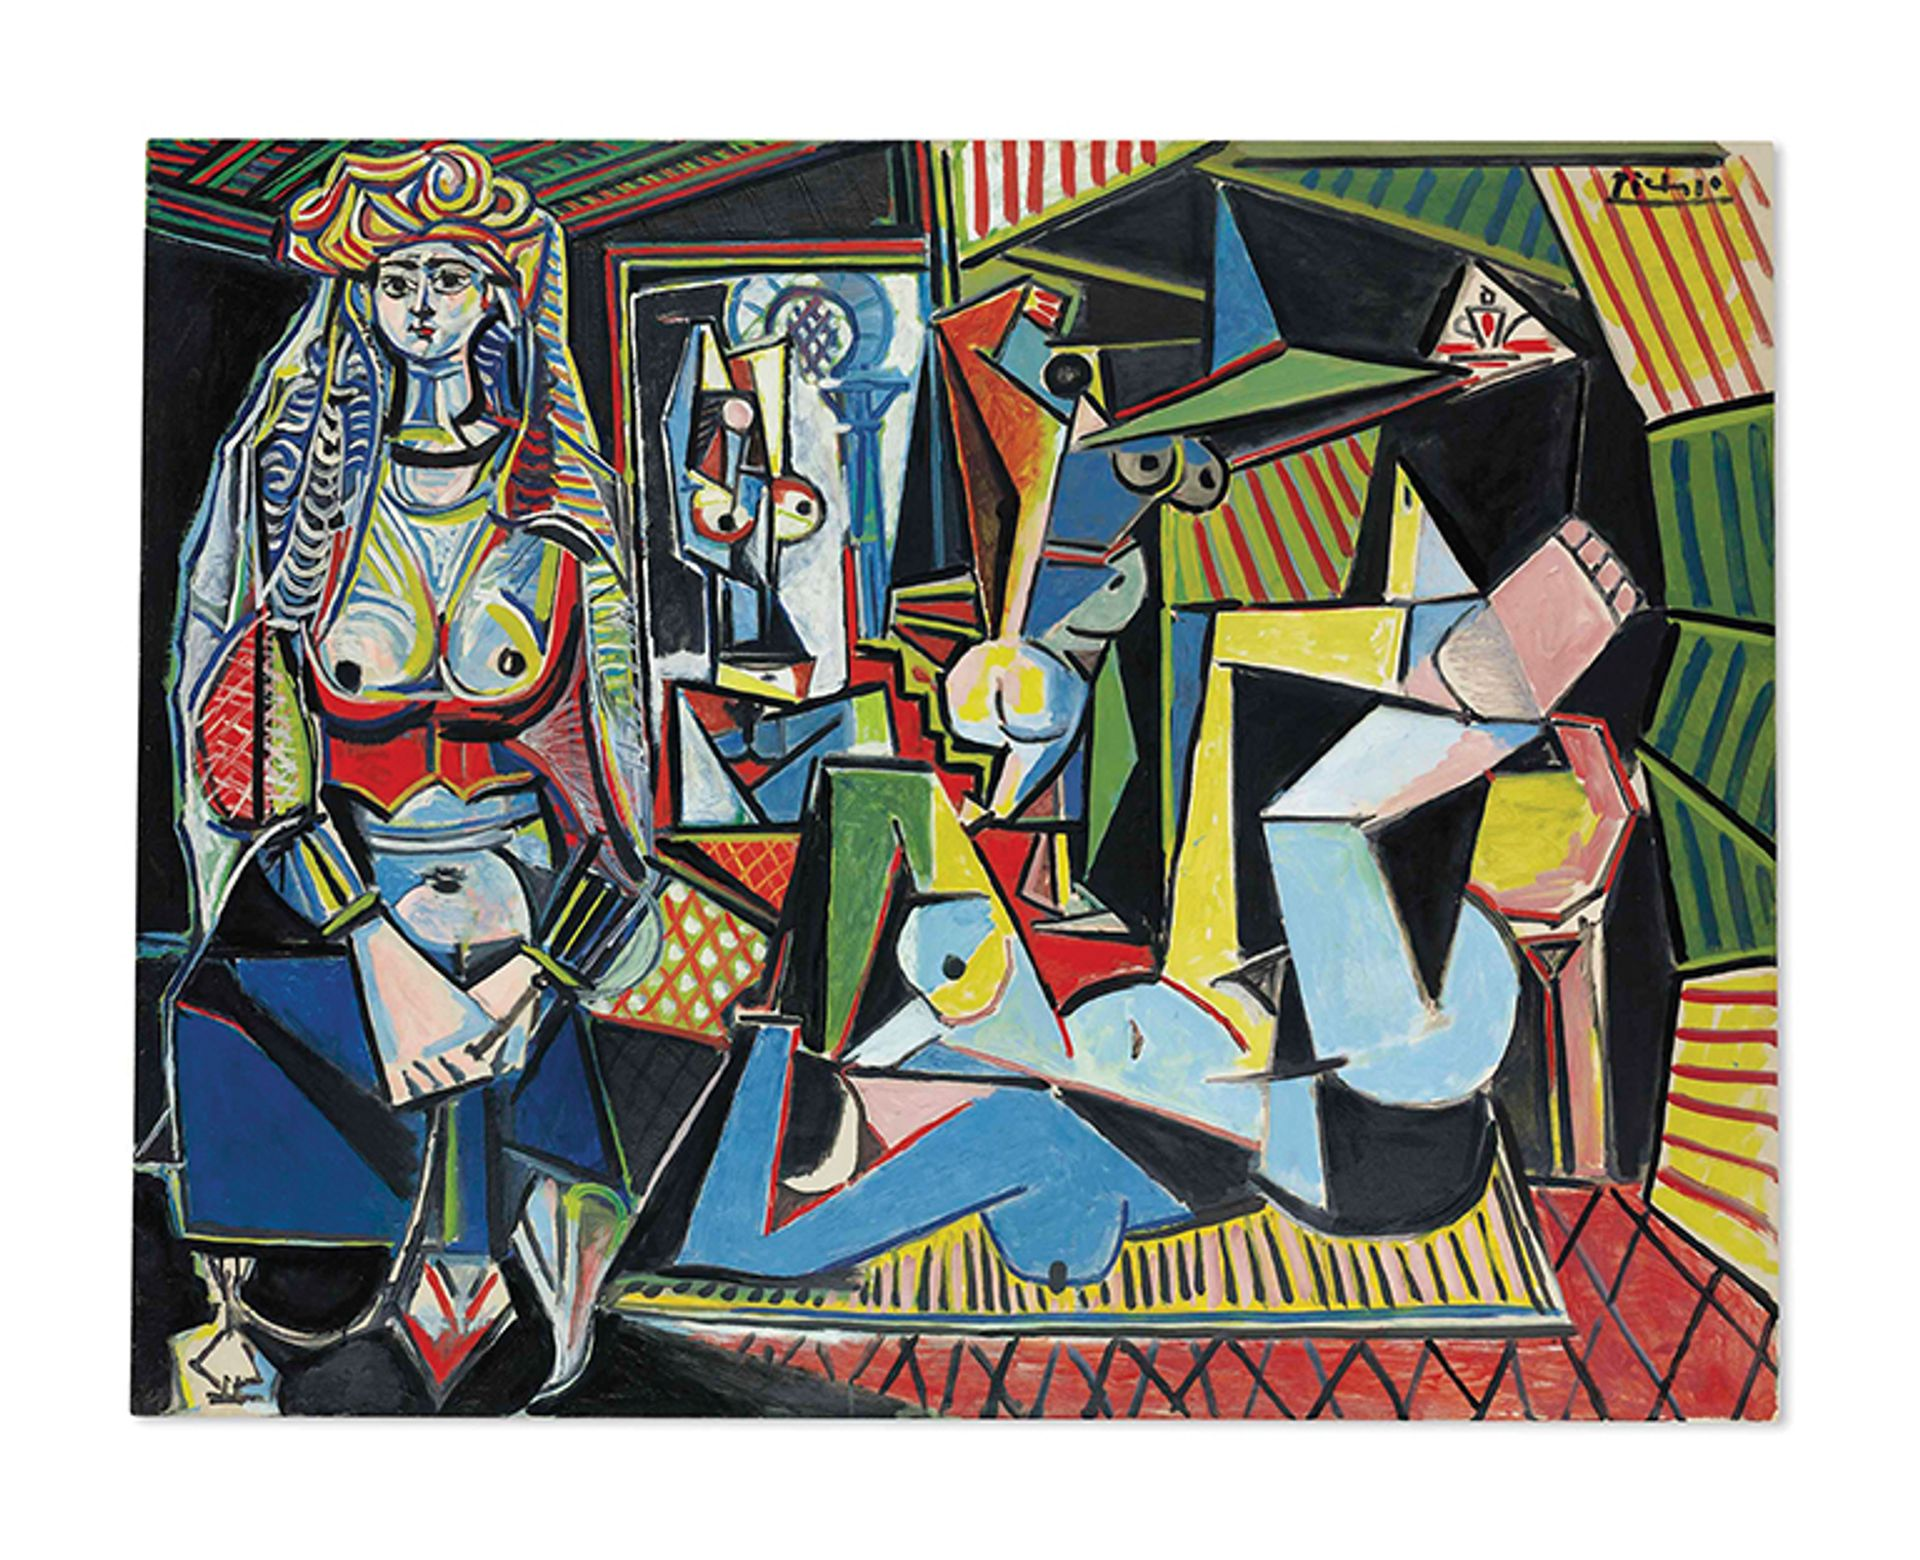 Les femmes d'Alger (Version 'O') (1955) sold for $179.4m at Christie's New York in May 2015, the artist's all-time auction high Courtesy of Christie's Images LTD